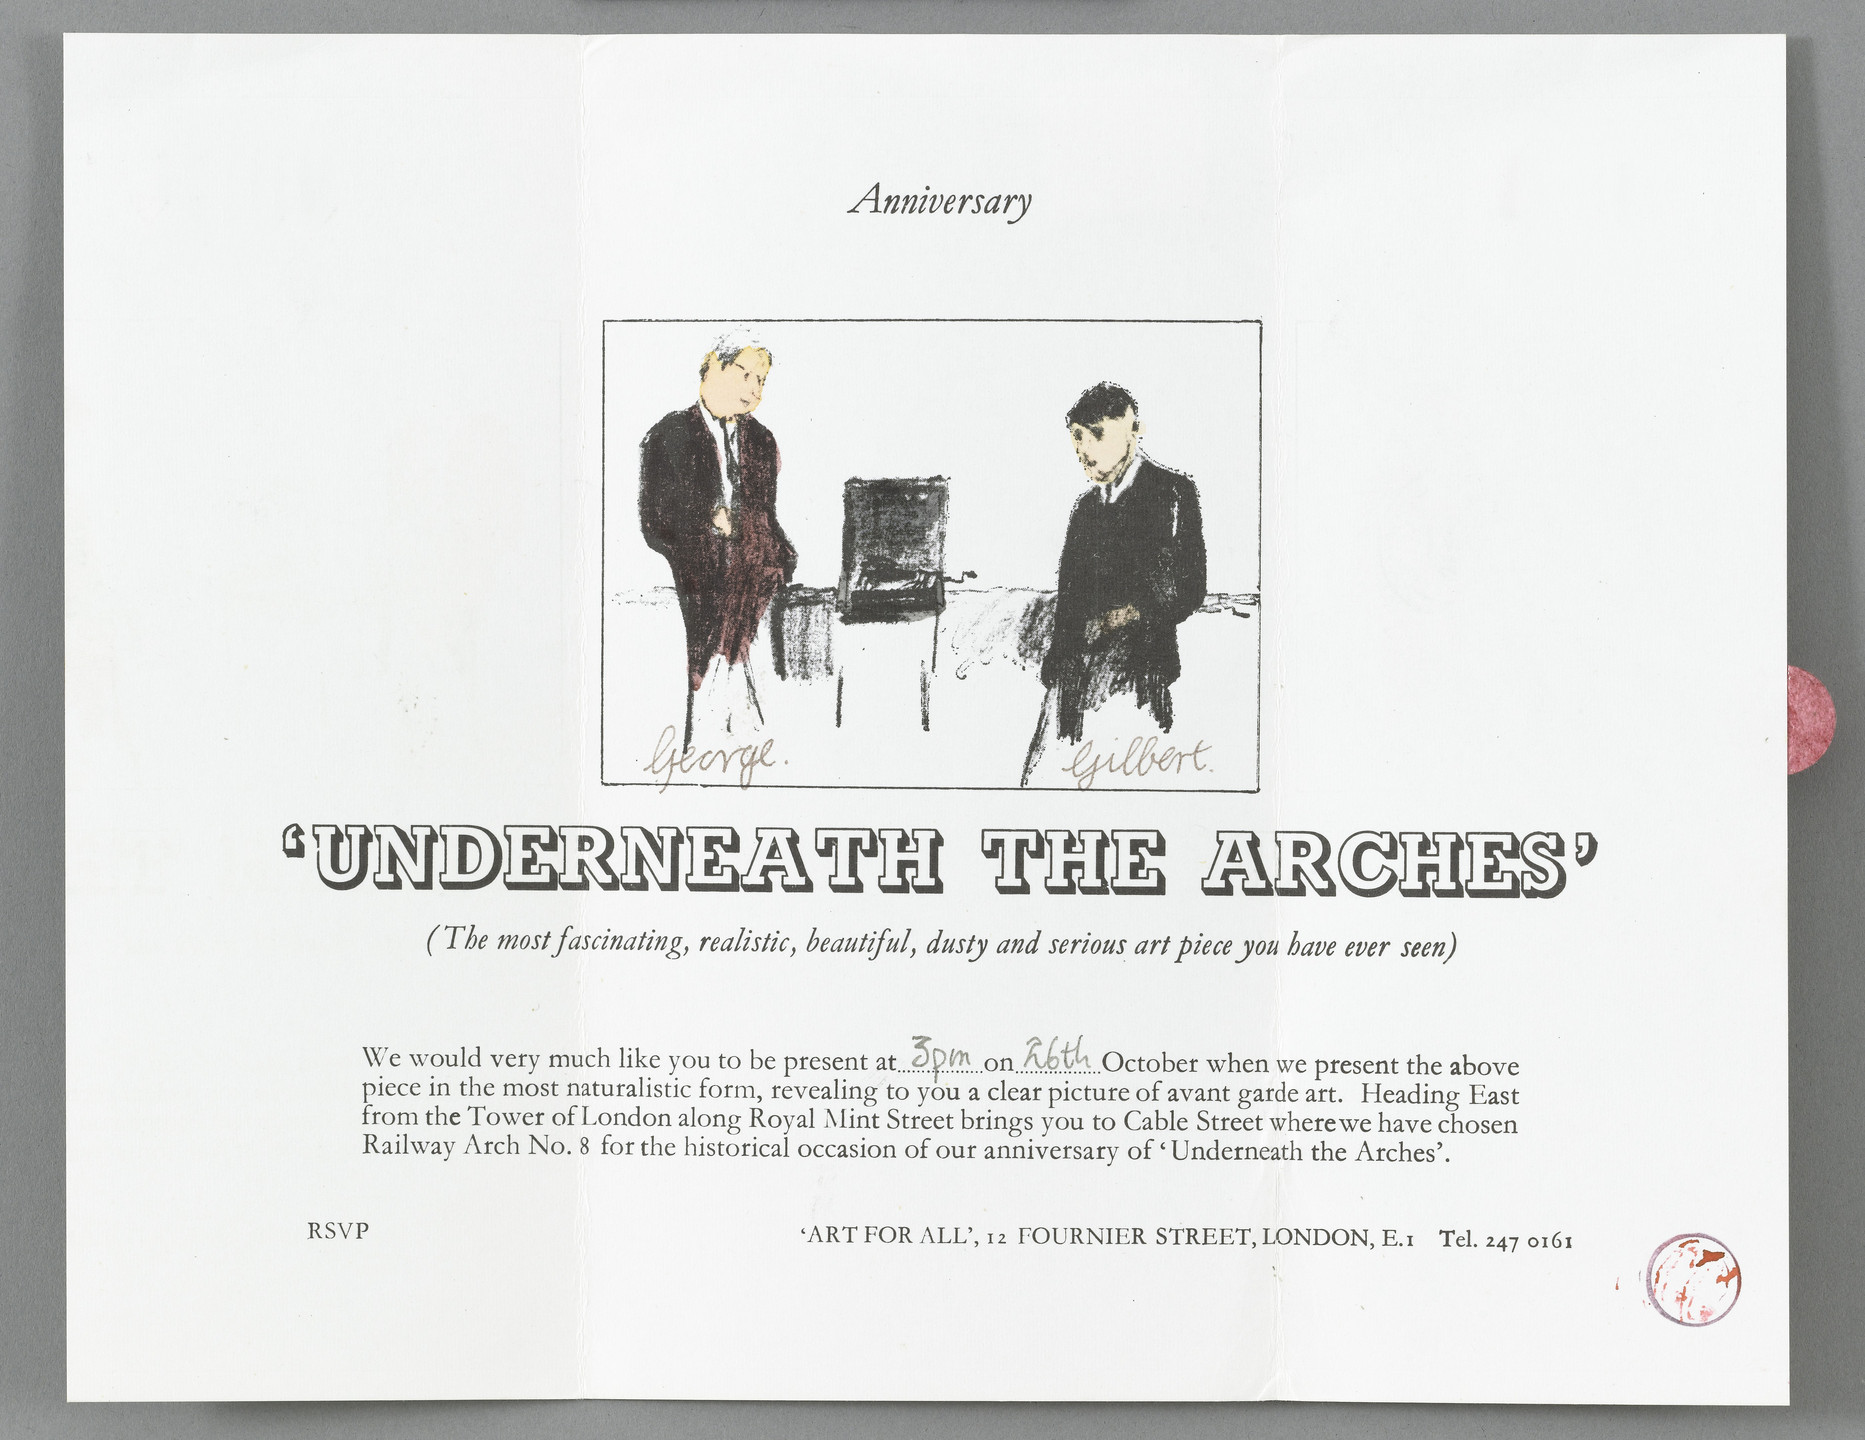 Gilbert & George, Gilbert Proesch, George Passmore. Invitation for anniversary of Underneath the Arches. 1969